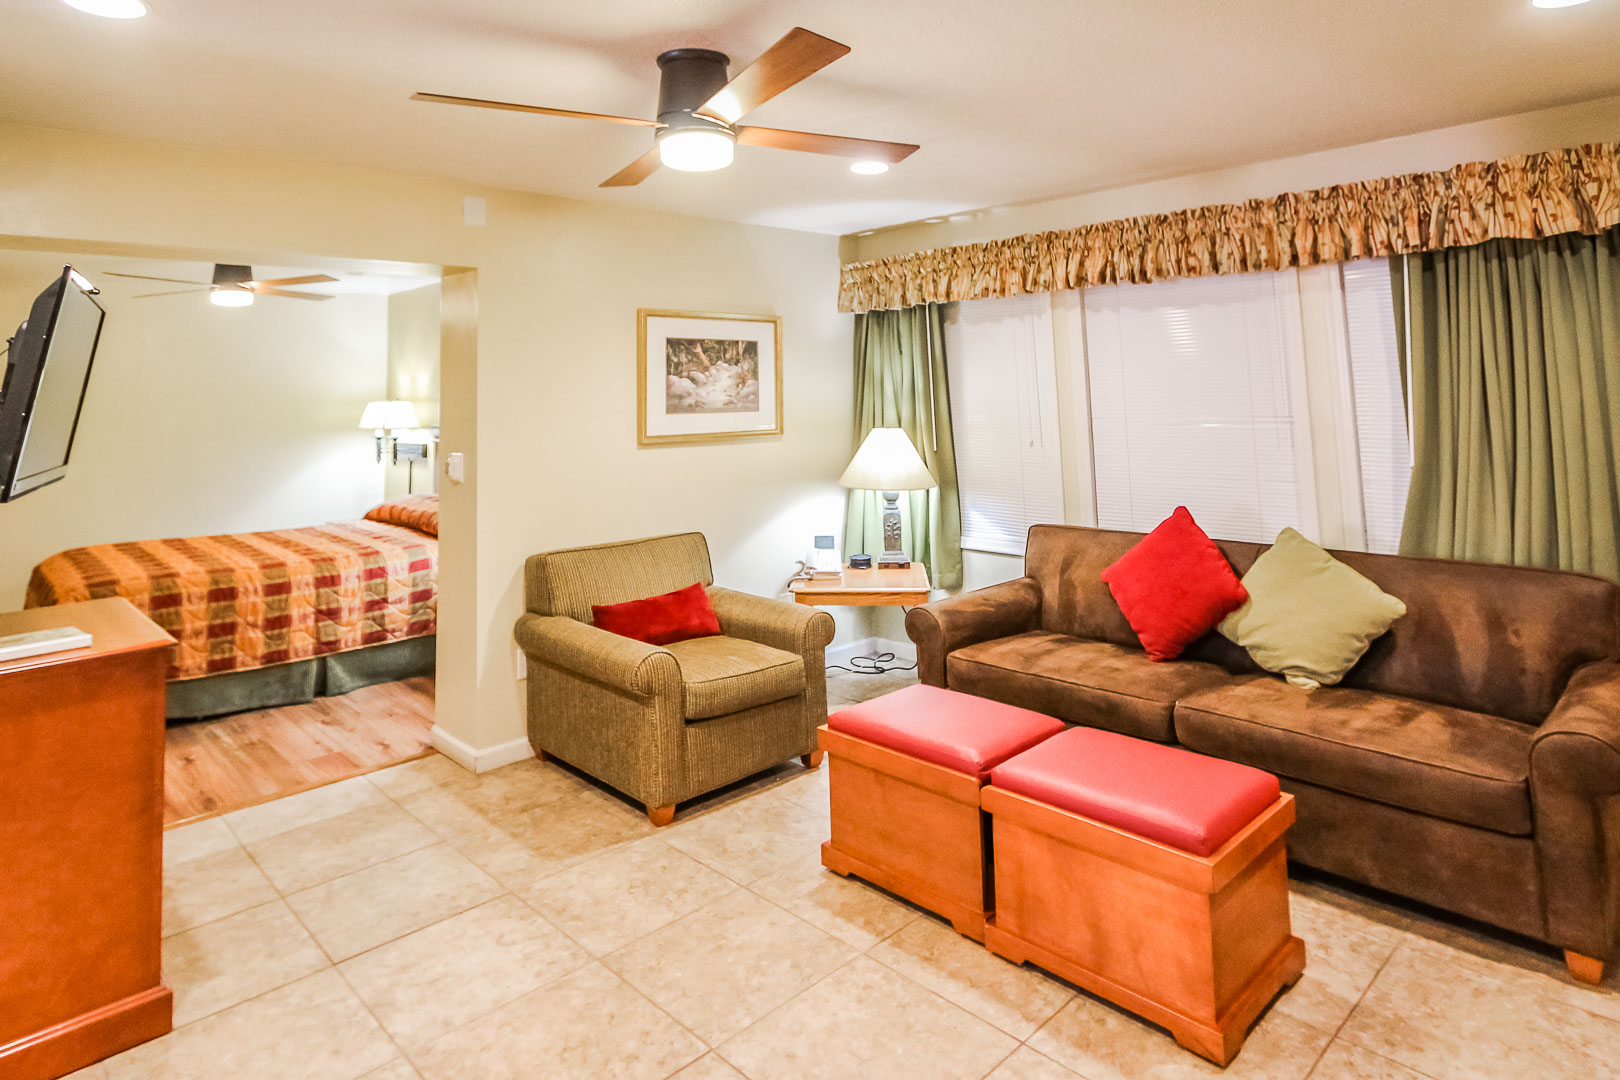 A one bedroom unit with a spacious living room at VRI's Roundhouse Resort in Pinetop, Arizona.